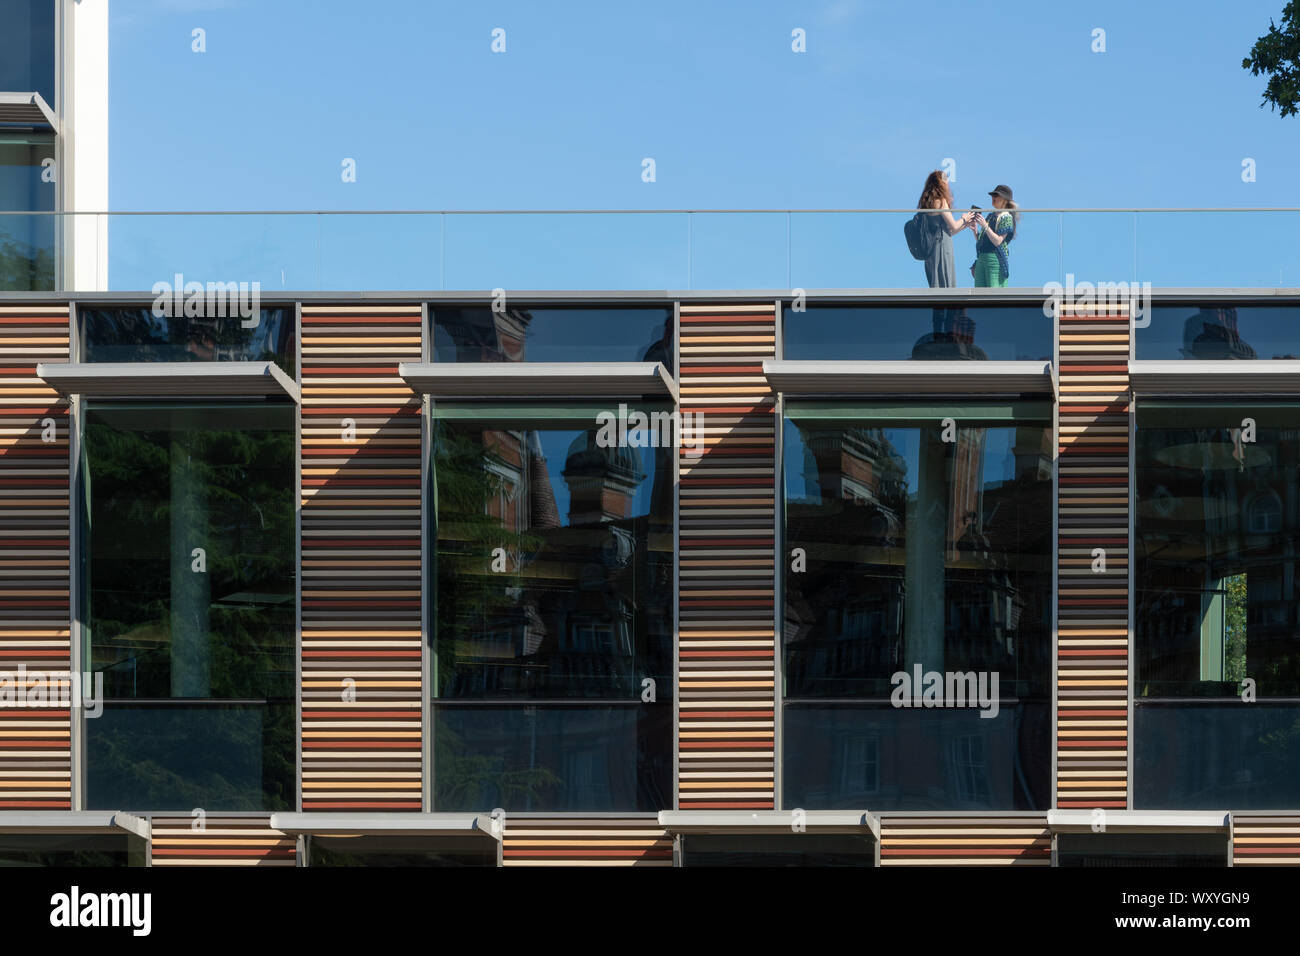 two-female-students-having-a-conversation-on-the-roof-of-the-emily-wilding-davison-building-at-royal-holloway-college-surrey-uk-WXYGN9.jpg